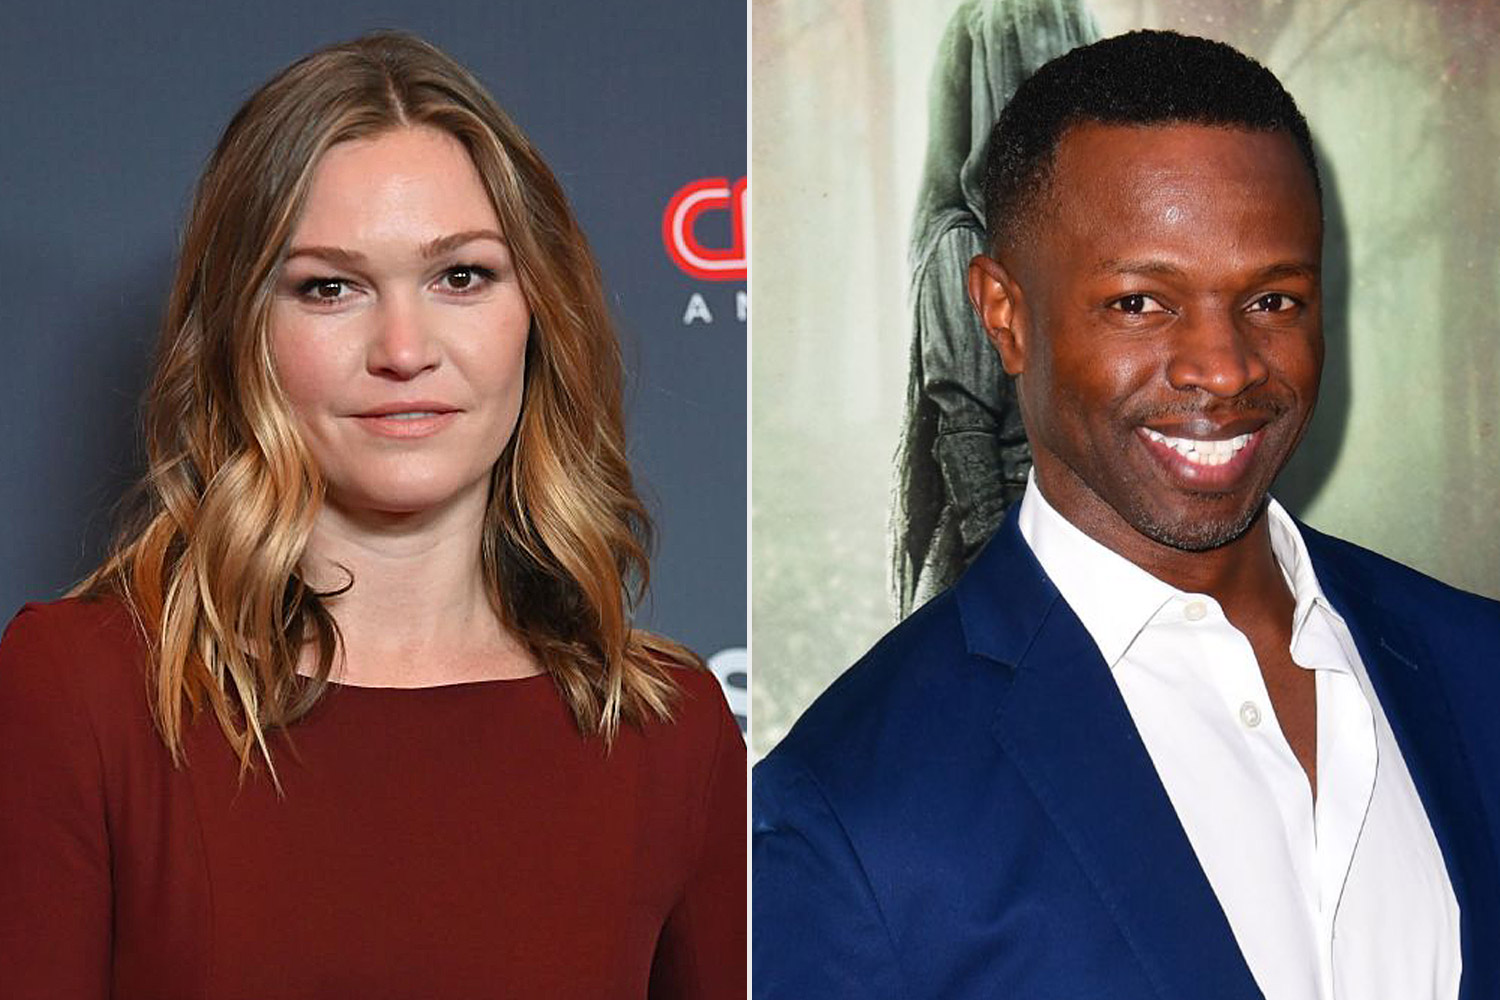 Save The Last Dance Costars Julia Stiles And Sean Patrick Thomas Reunite People Com